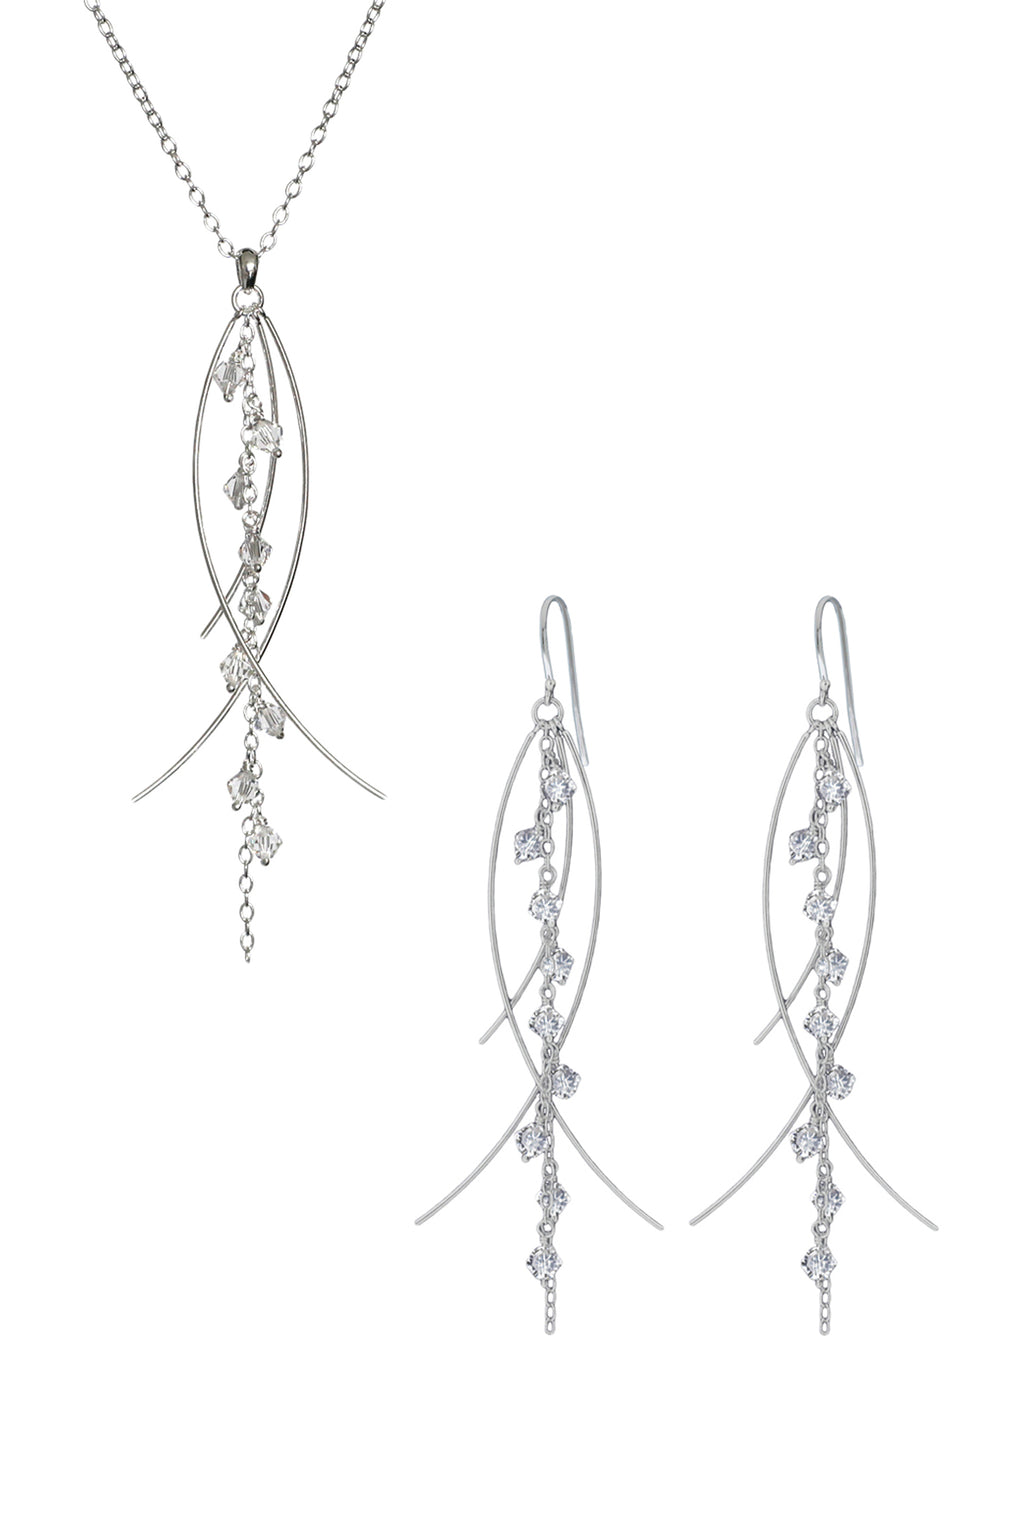 Silver crystal drop earrings and pendant | Nina B Jewellery